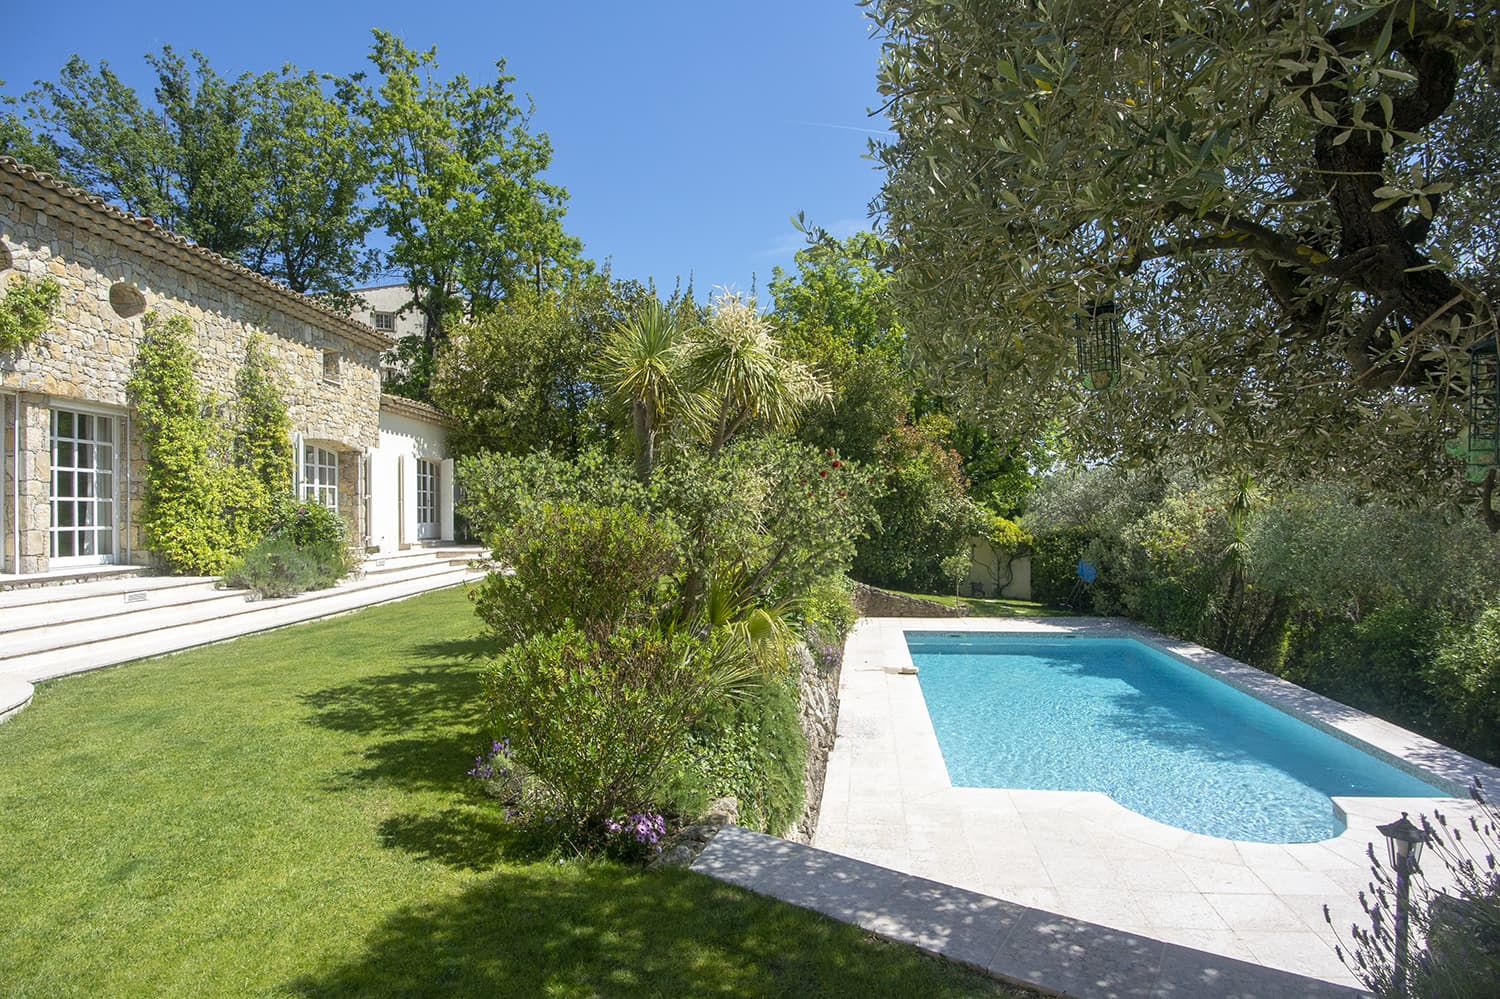 Villa with private pool in Valbonne, Provence-Alpes-Côte d'Azur